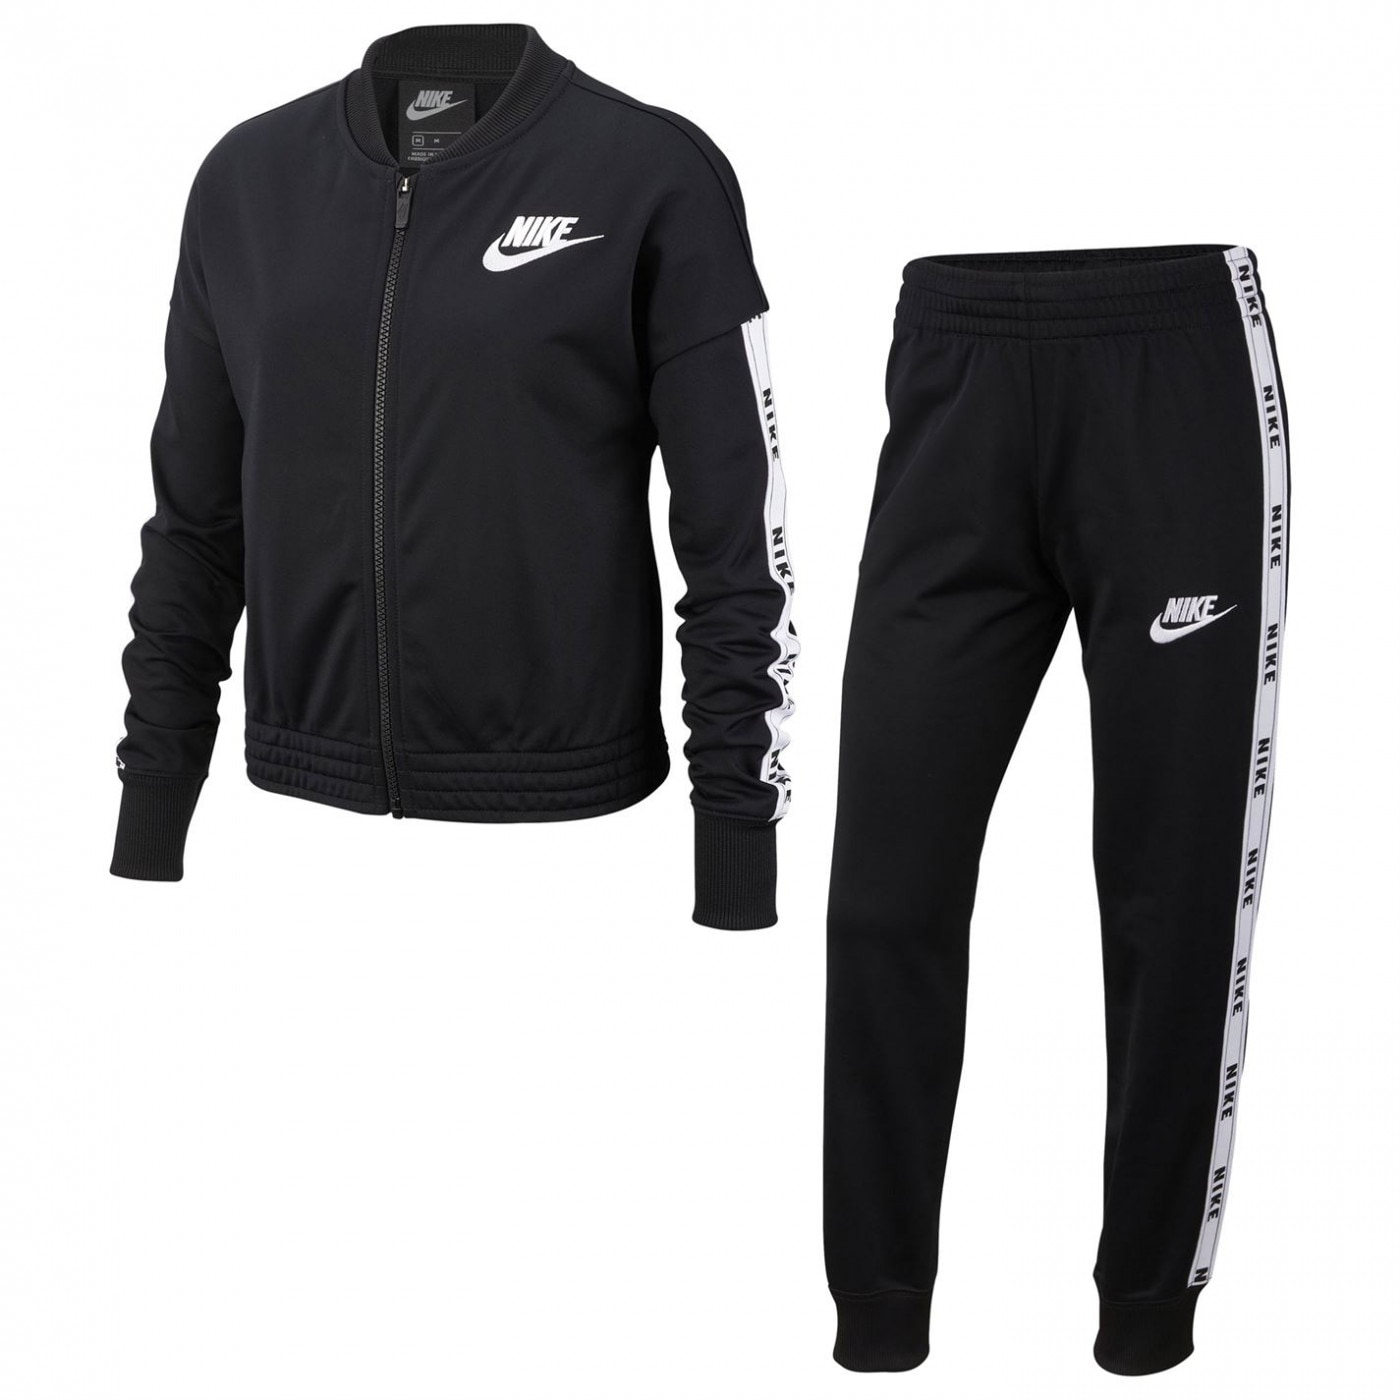 Nike Tricot Suit Girls